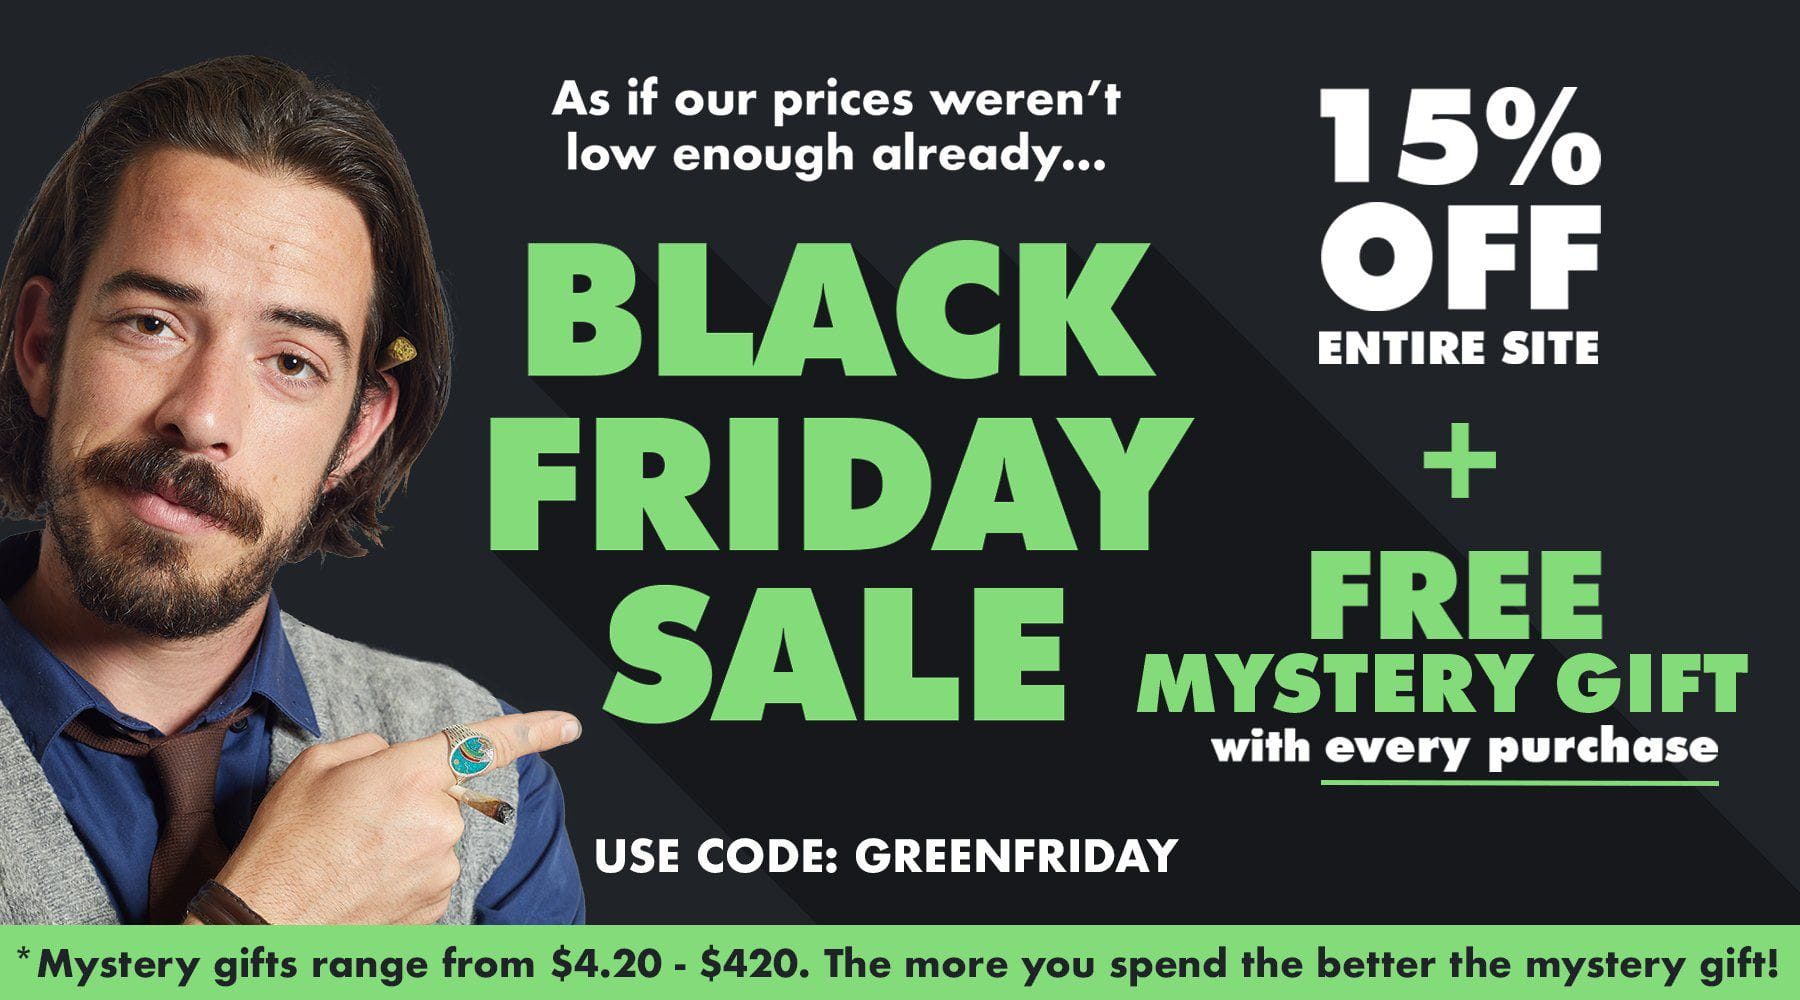 Make Your Black Friday a Green Friday